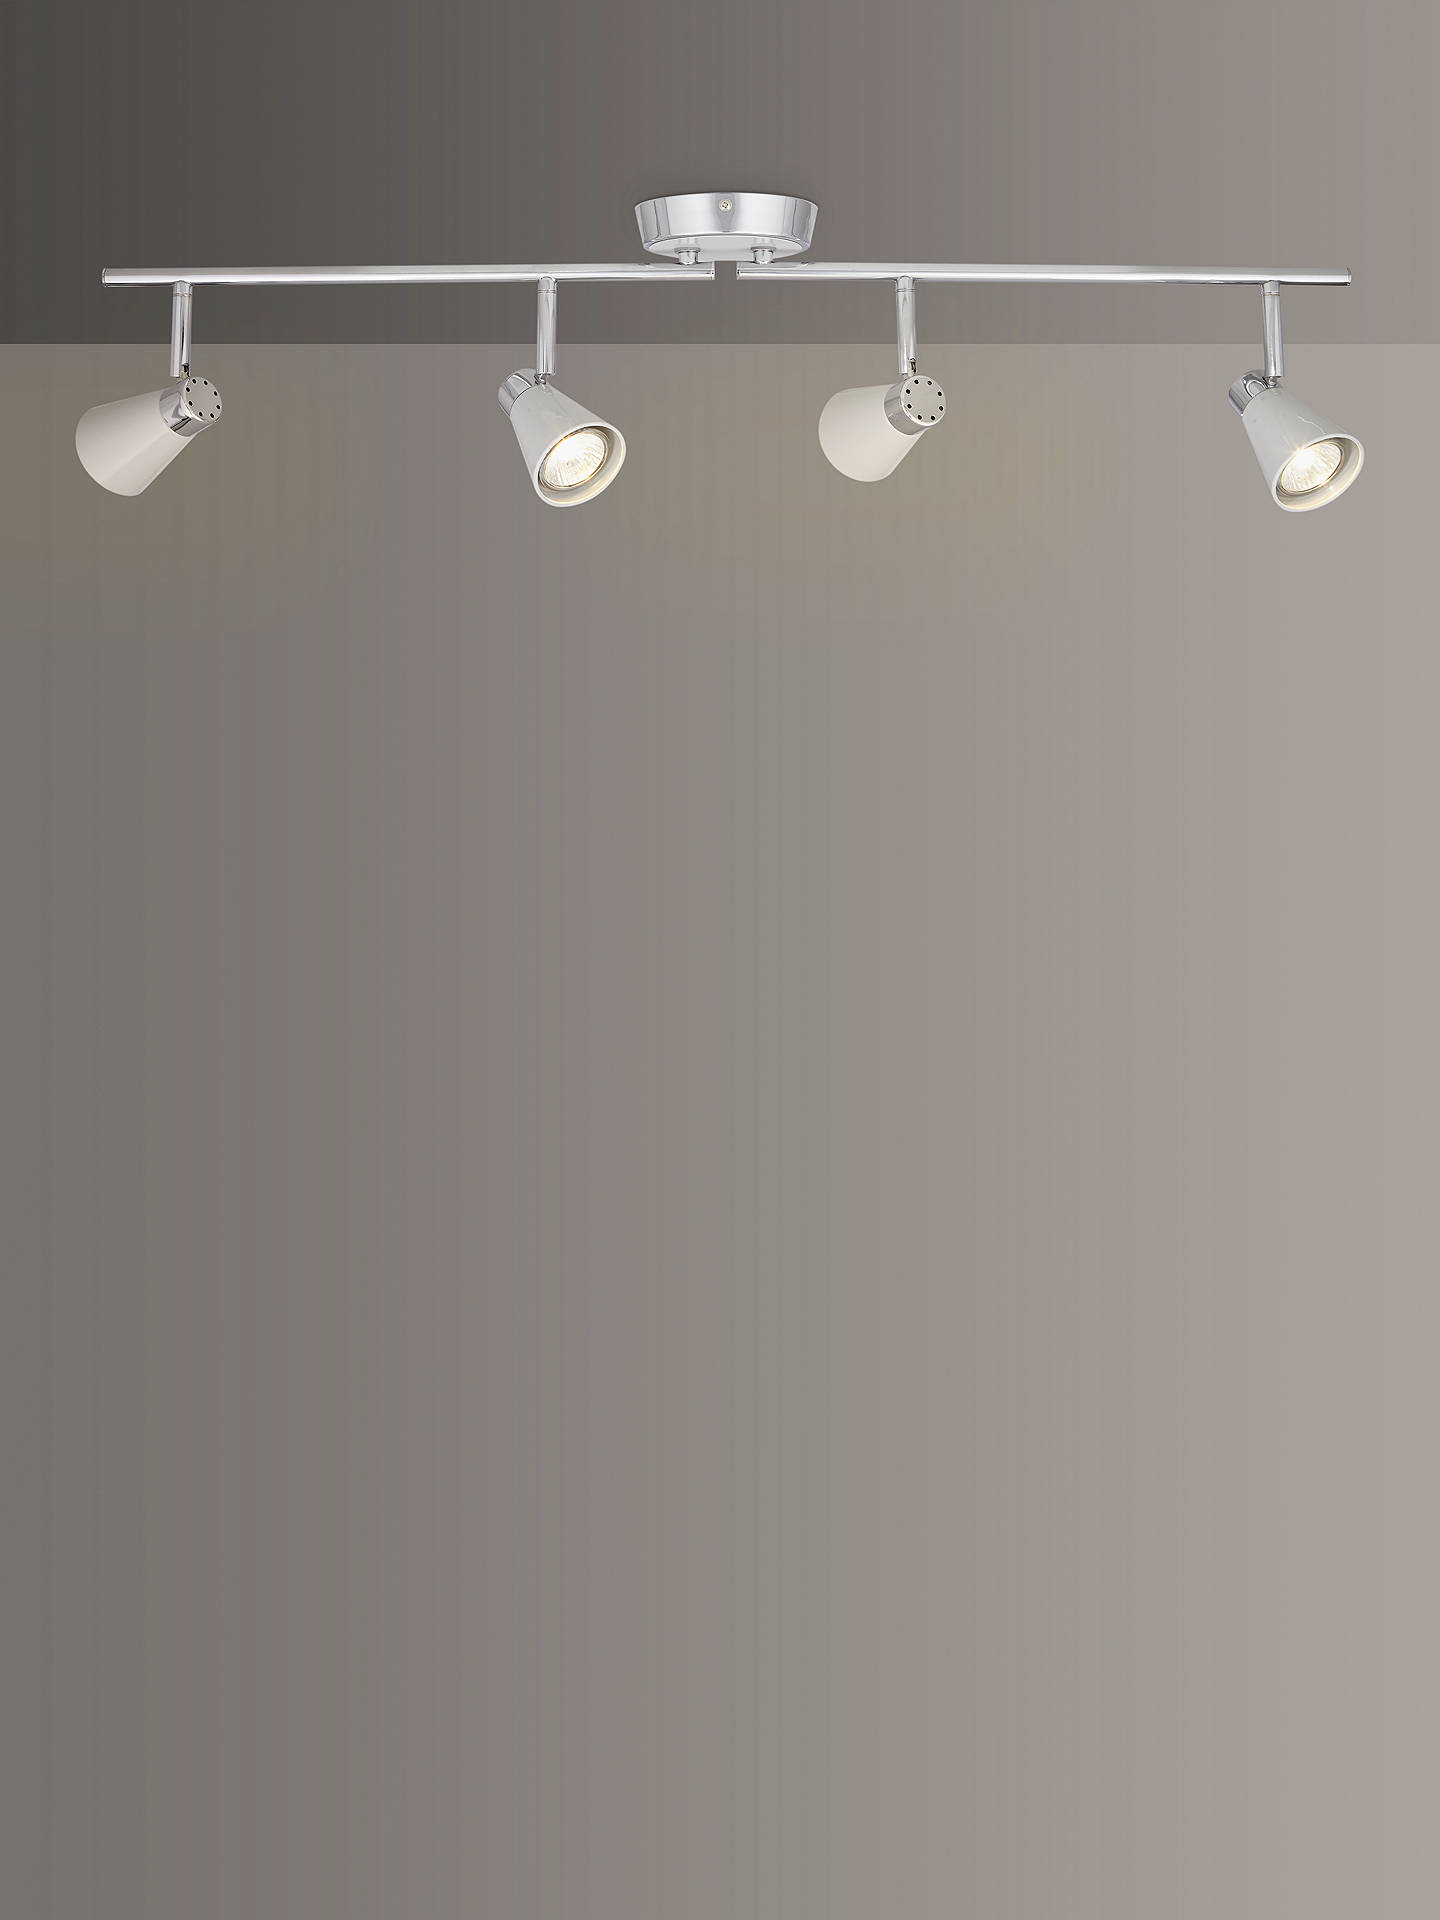 BuyJohn Lewis & Partners Logan GU10 LED 4 Spotlight Ceiling Bar, Grey Online at johnlewis.com